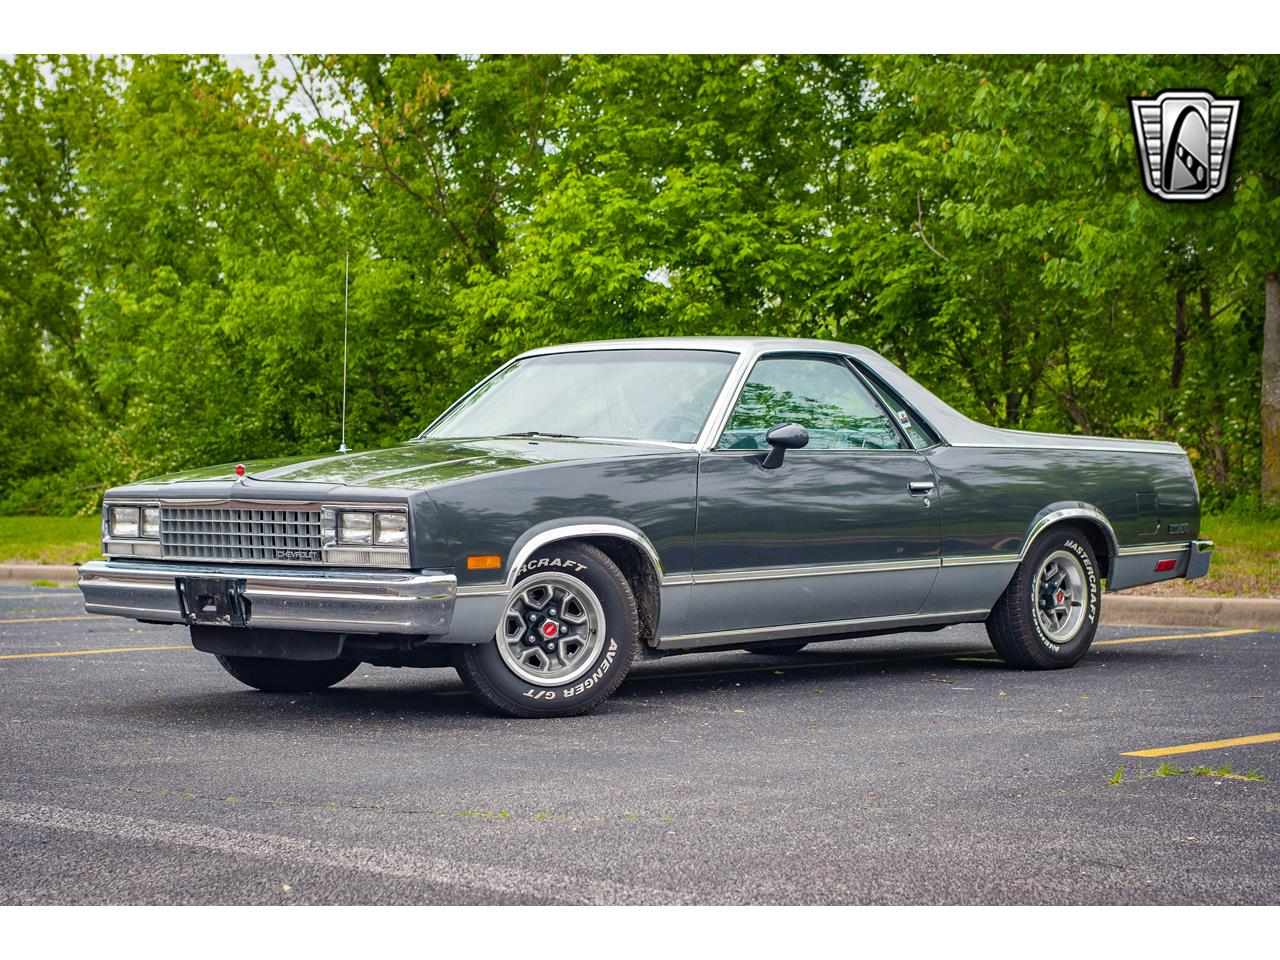 Large Picture of '82 Chevrolet El Camino located in O'Fallon Illinois - $13,000.00 Offered by Gateway Classic Cars - St. Louis - QB9A